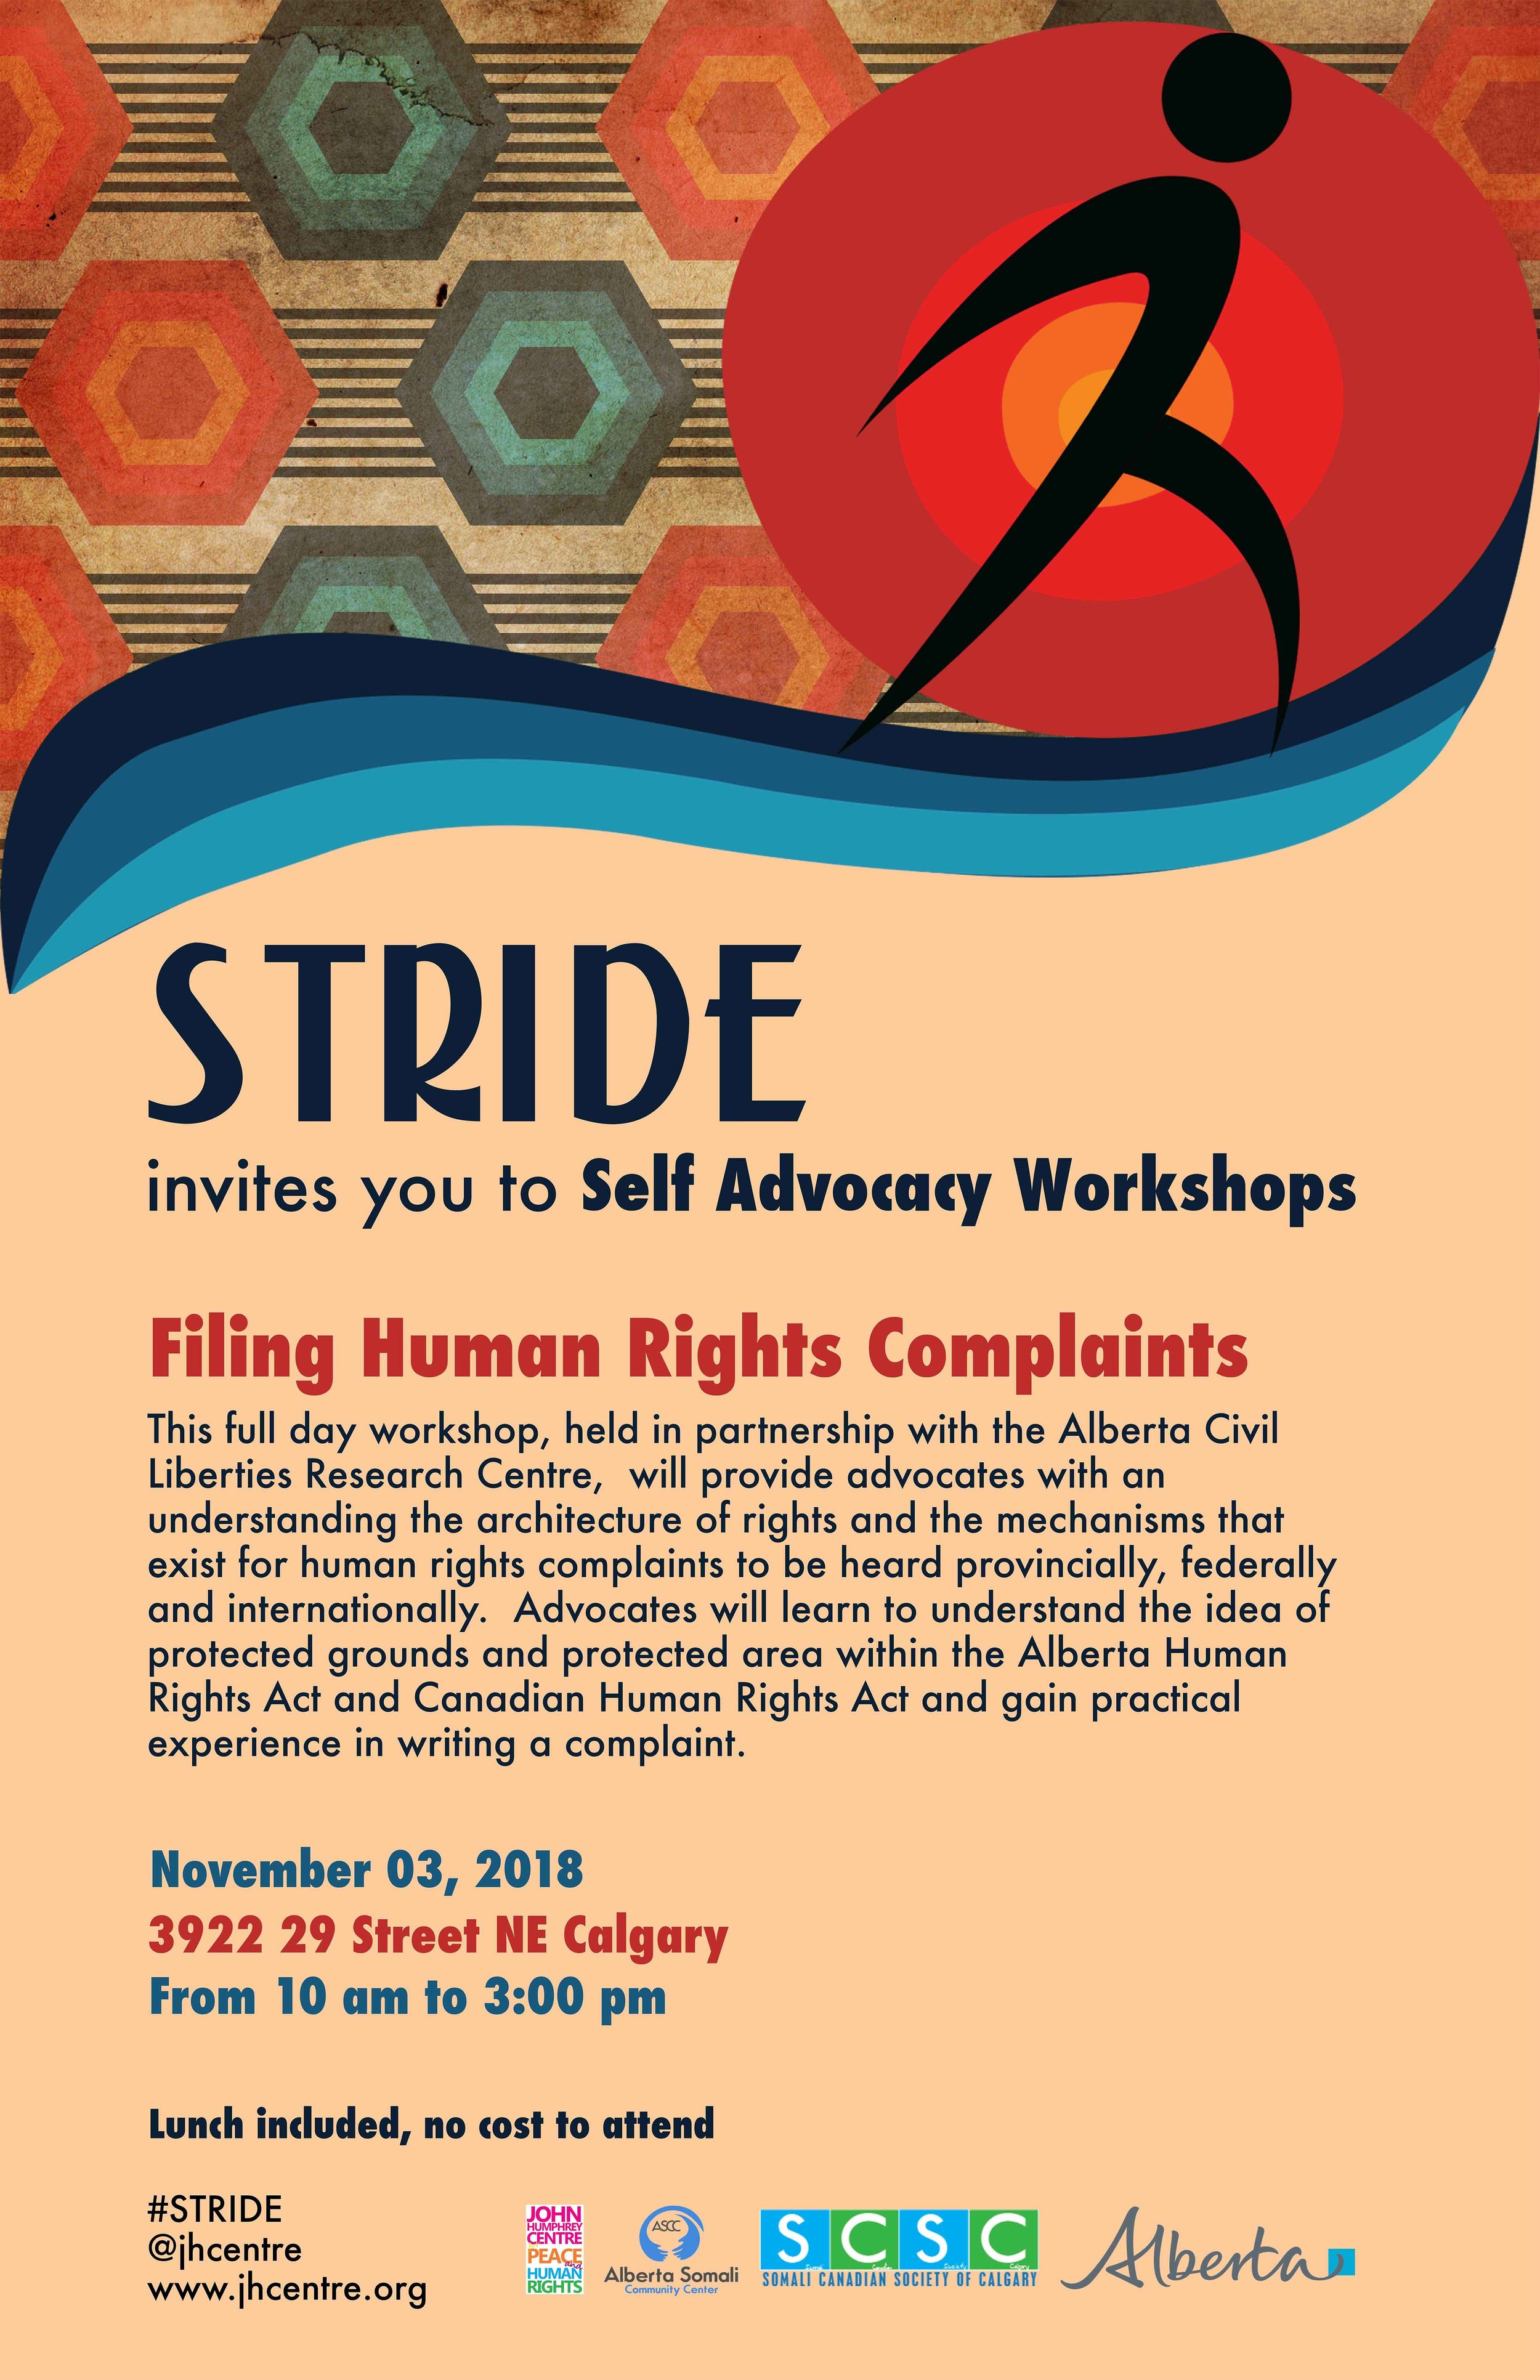 Stride Filing Human Rights Complaints Calgary workshop